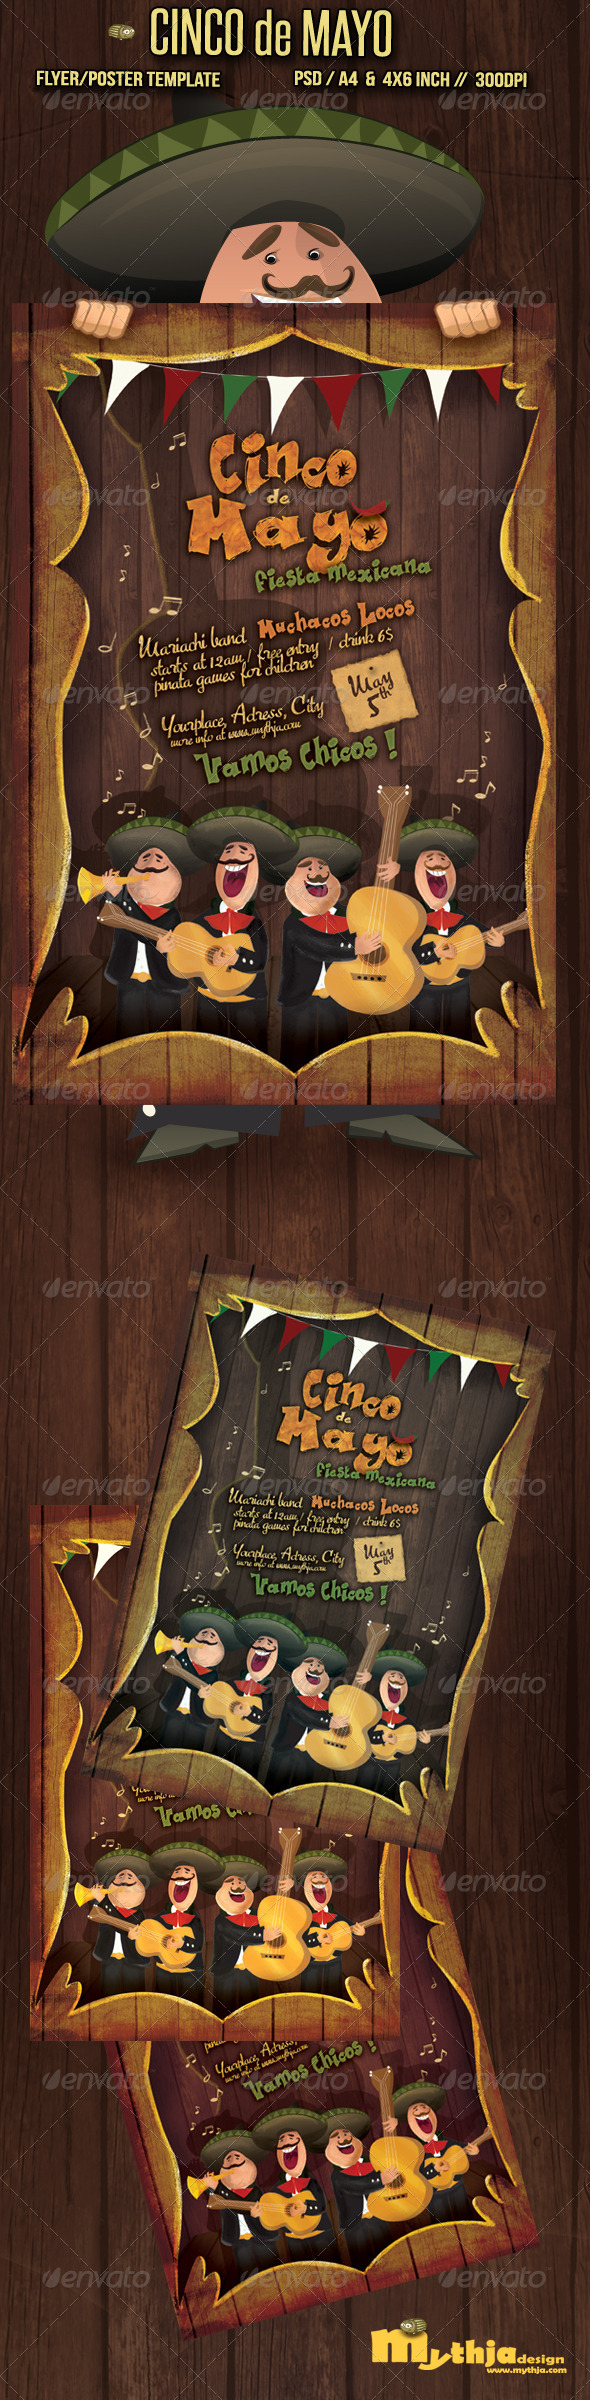 Cinco de Mayo - Flyer/Poster Template - Flyers Print Templates